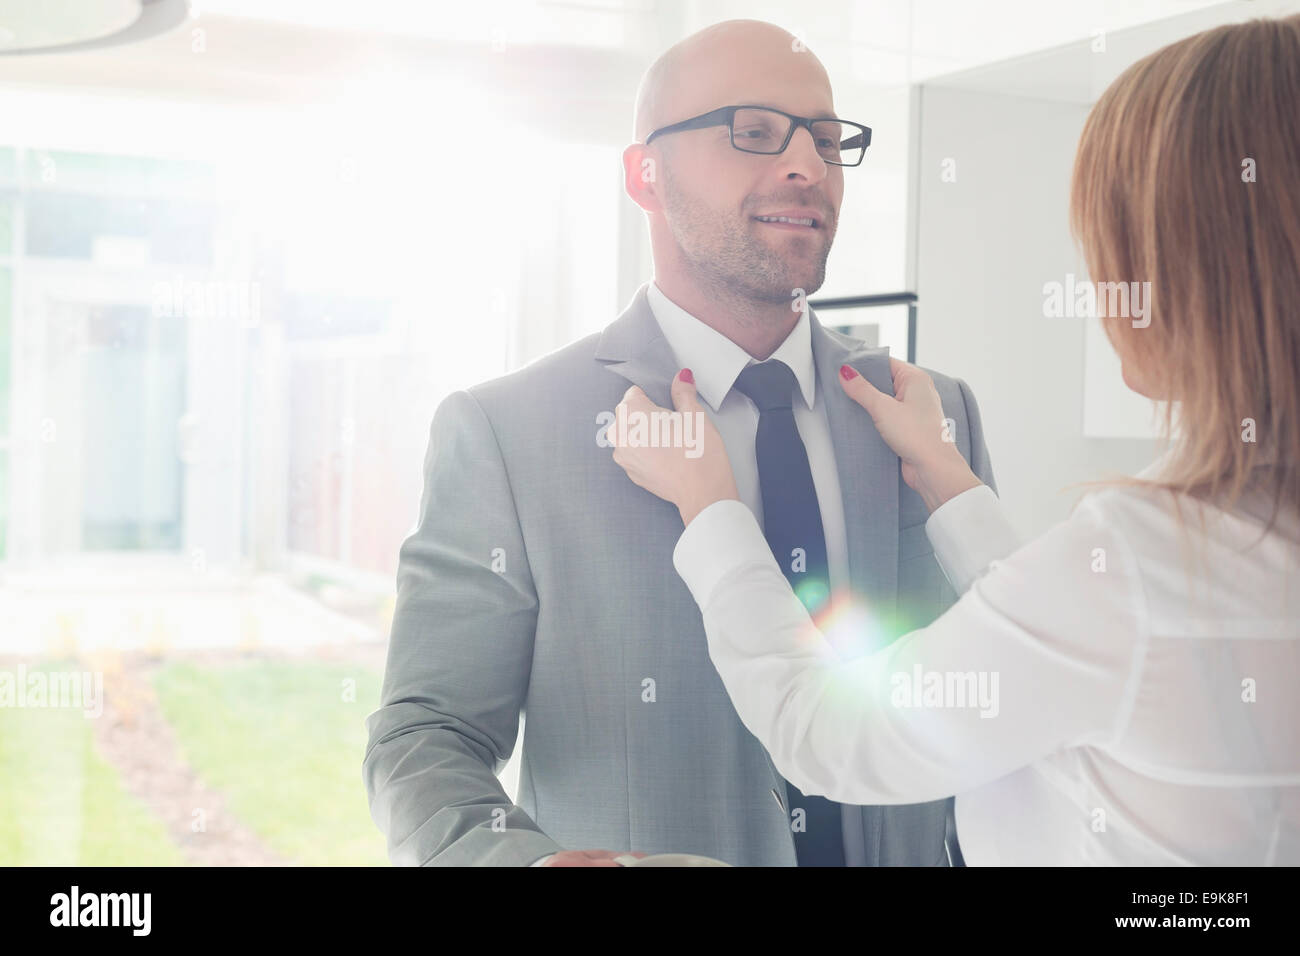 Woman dressing up businessman at home - Stock Image